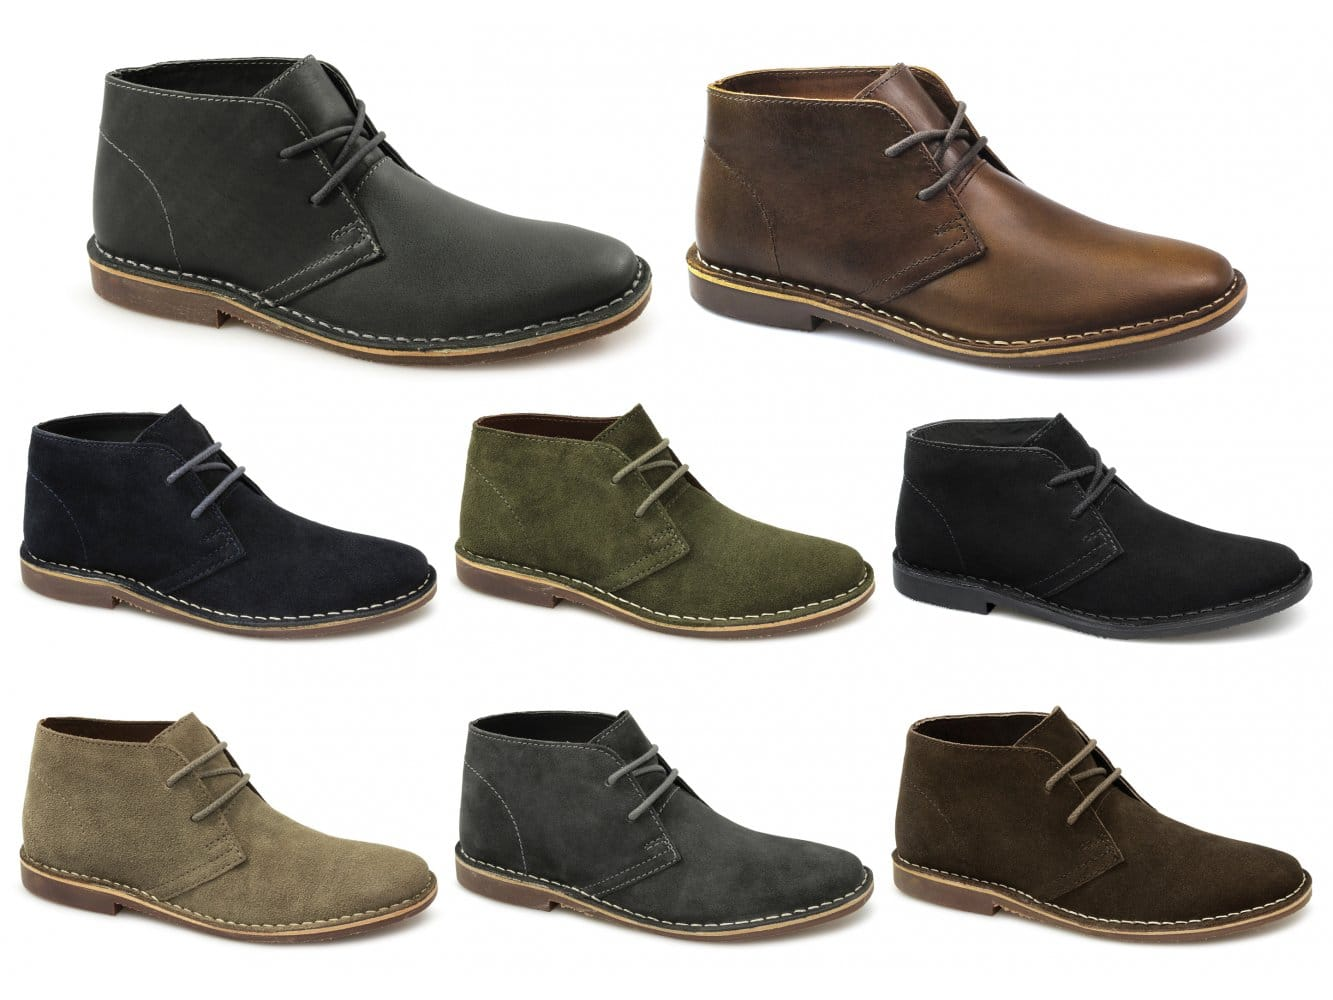 red tape gobi ii mens original leather suede lace up comfy casual desert boots ebay. Black Bedroom Furniture Sets. Home Design Ideas